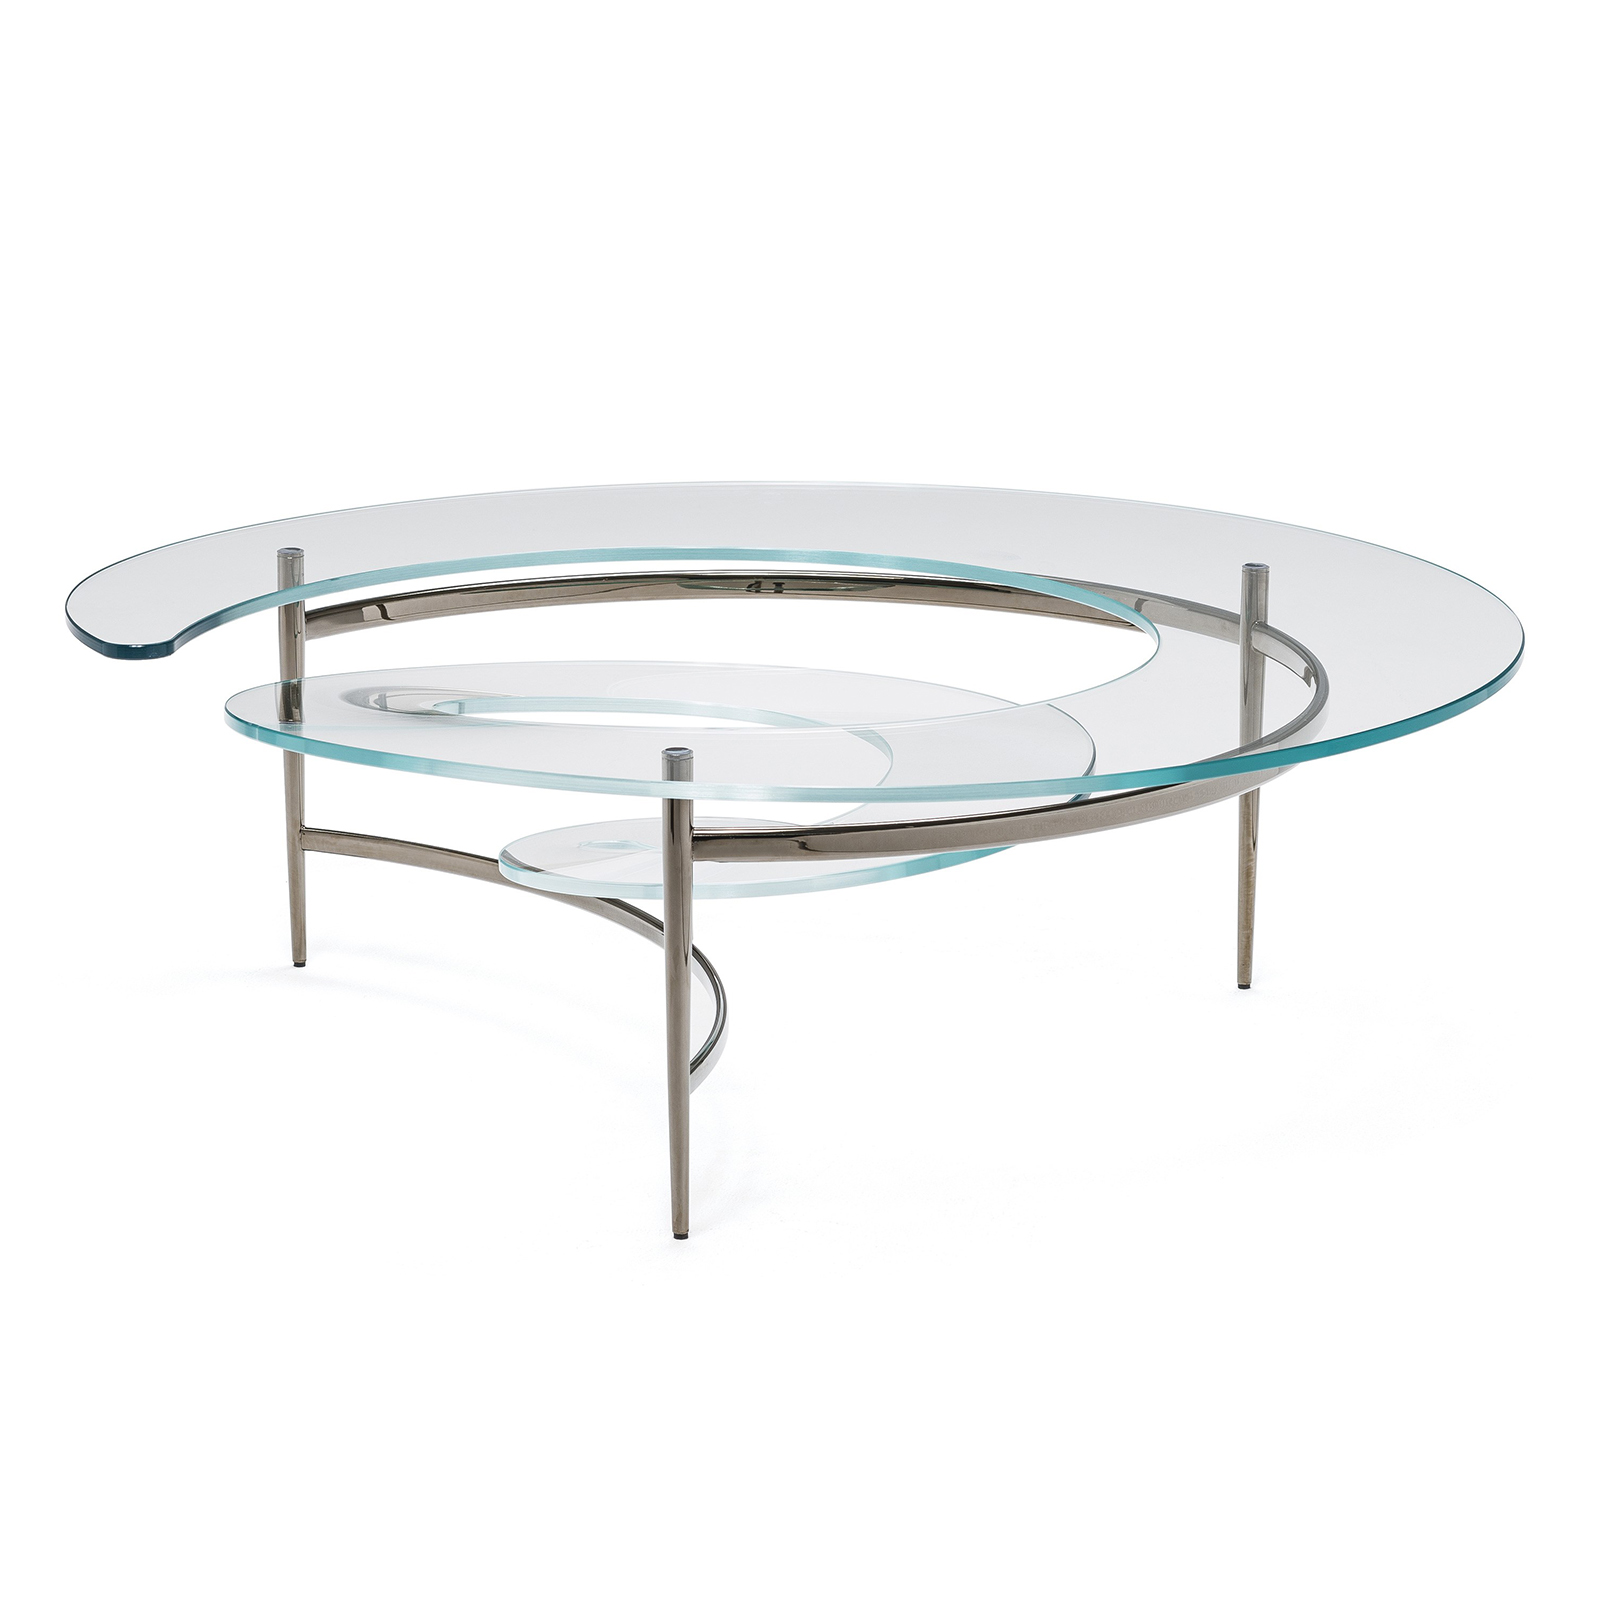 Table basse design en verre spirale mobilier de luxe - Table basse en verre but ...